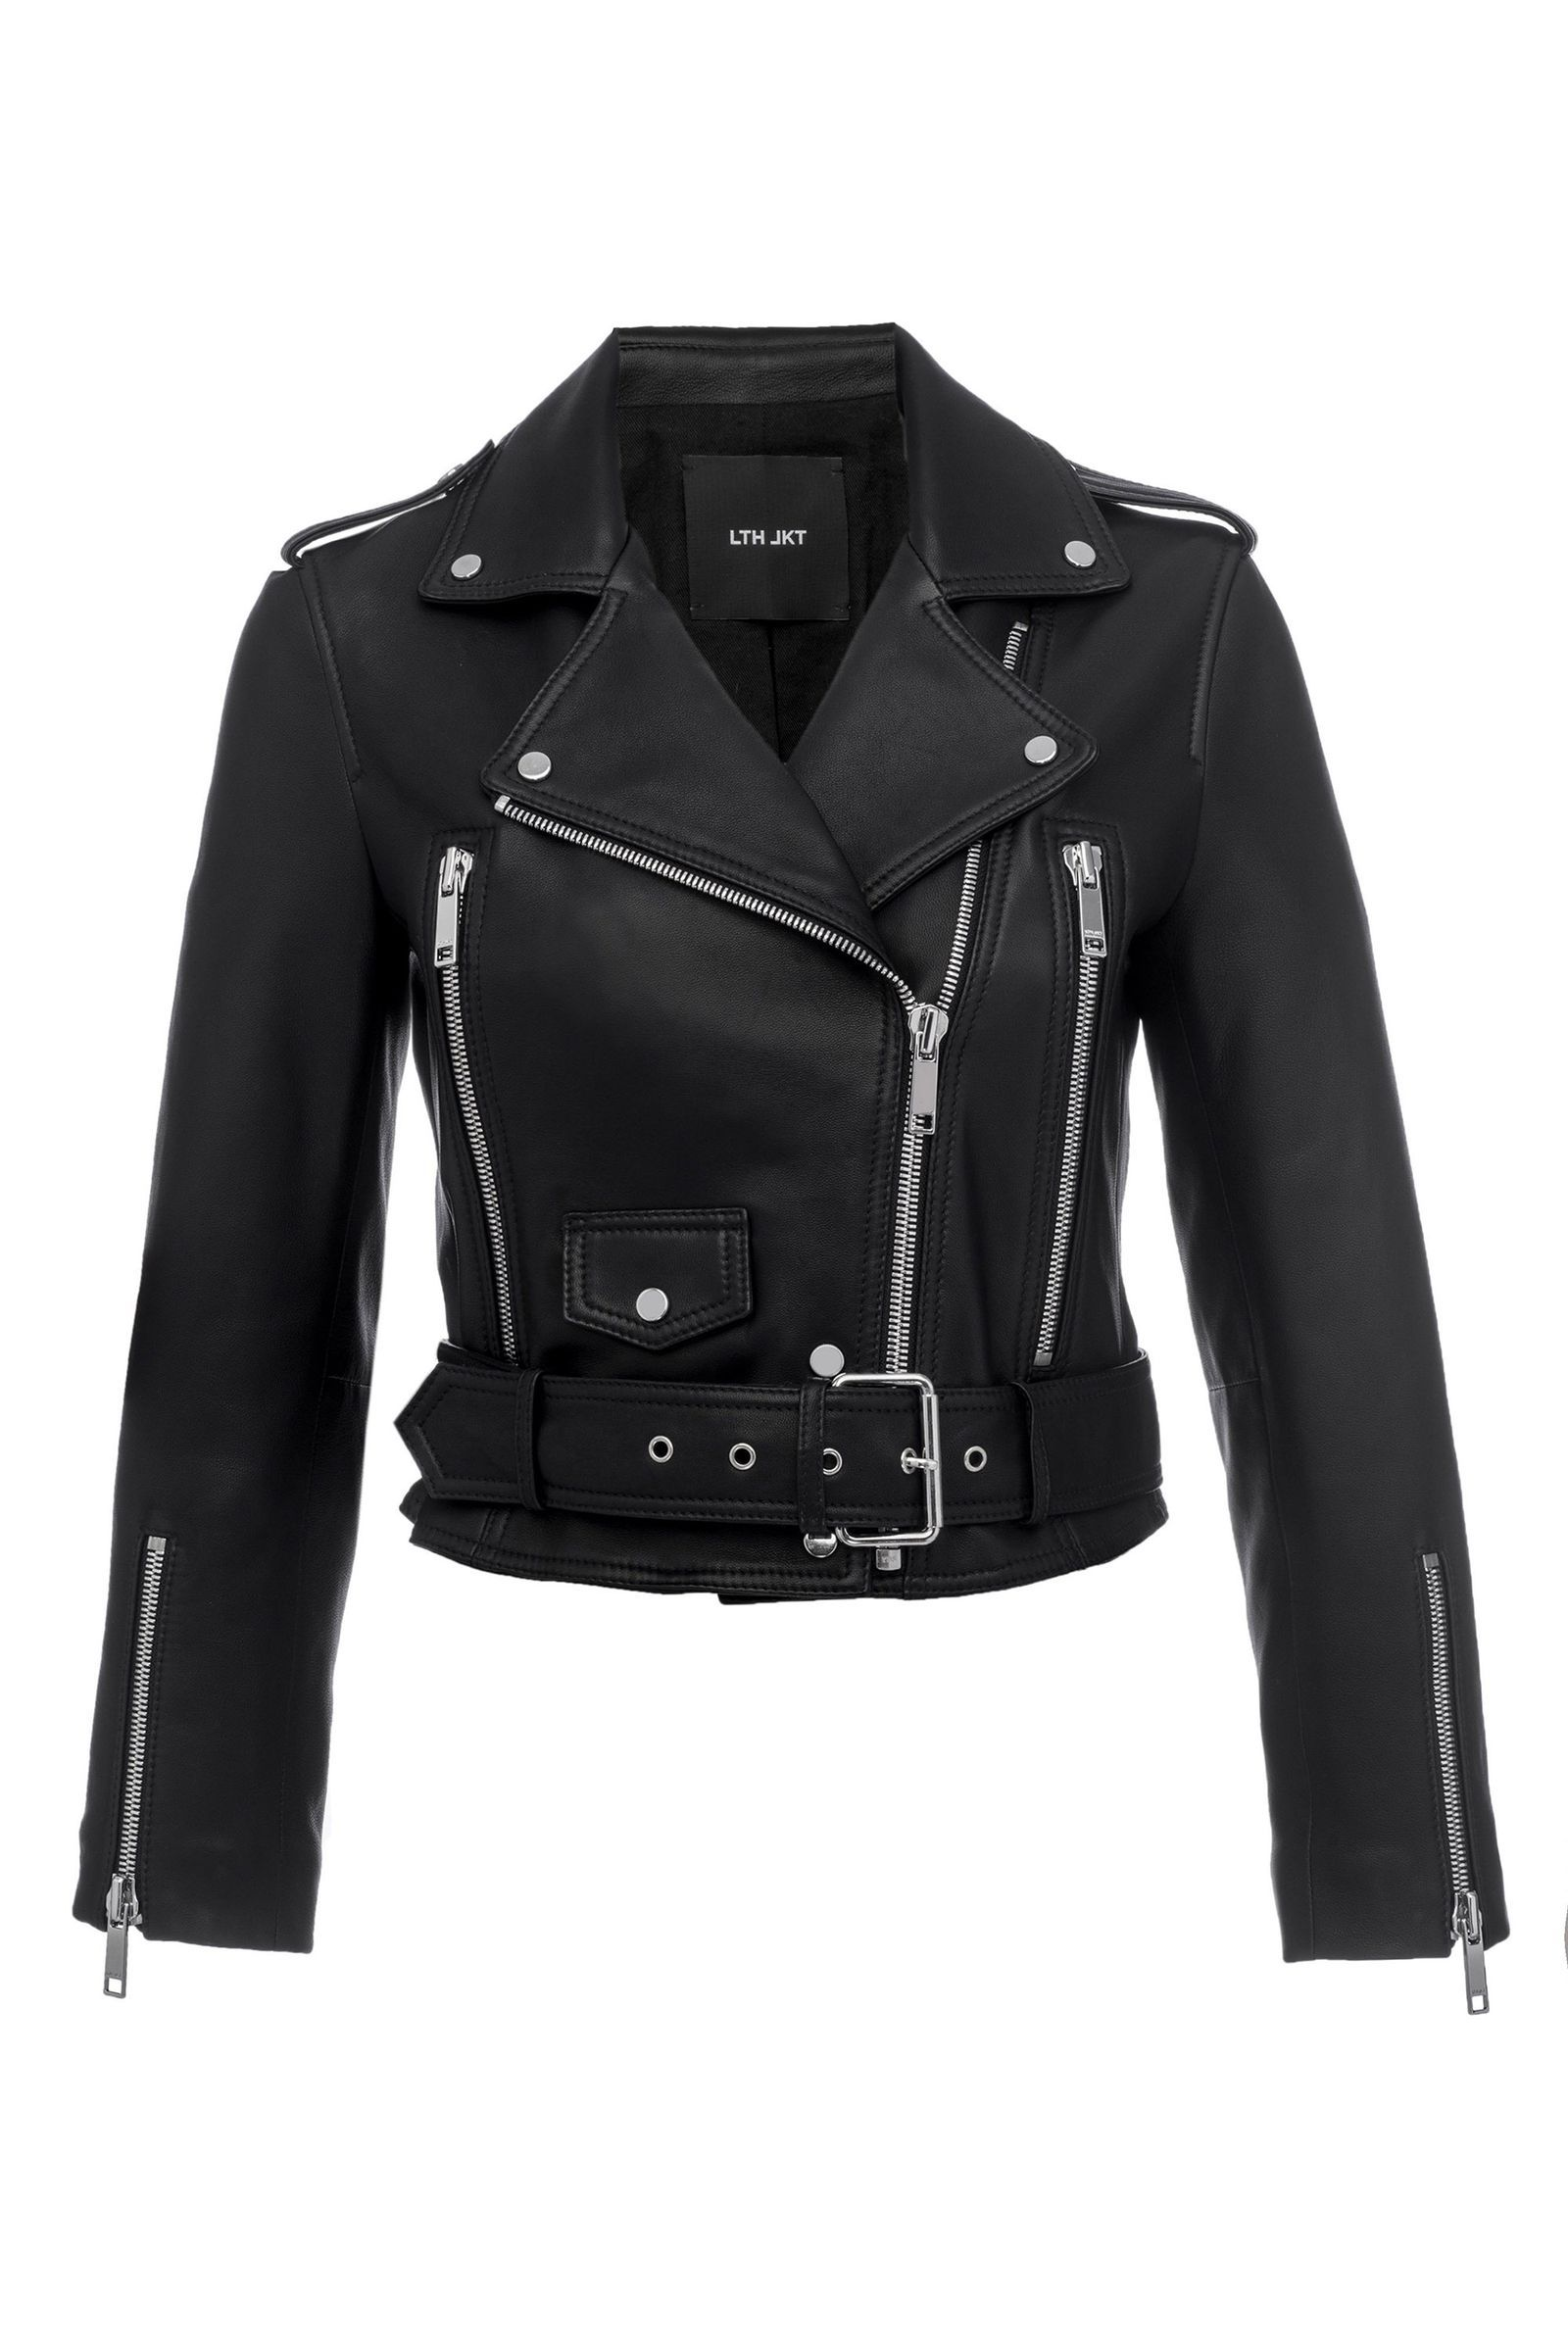 6 Brands That Make the Perfect Leather Jacket for Under